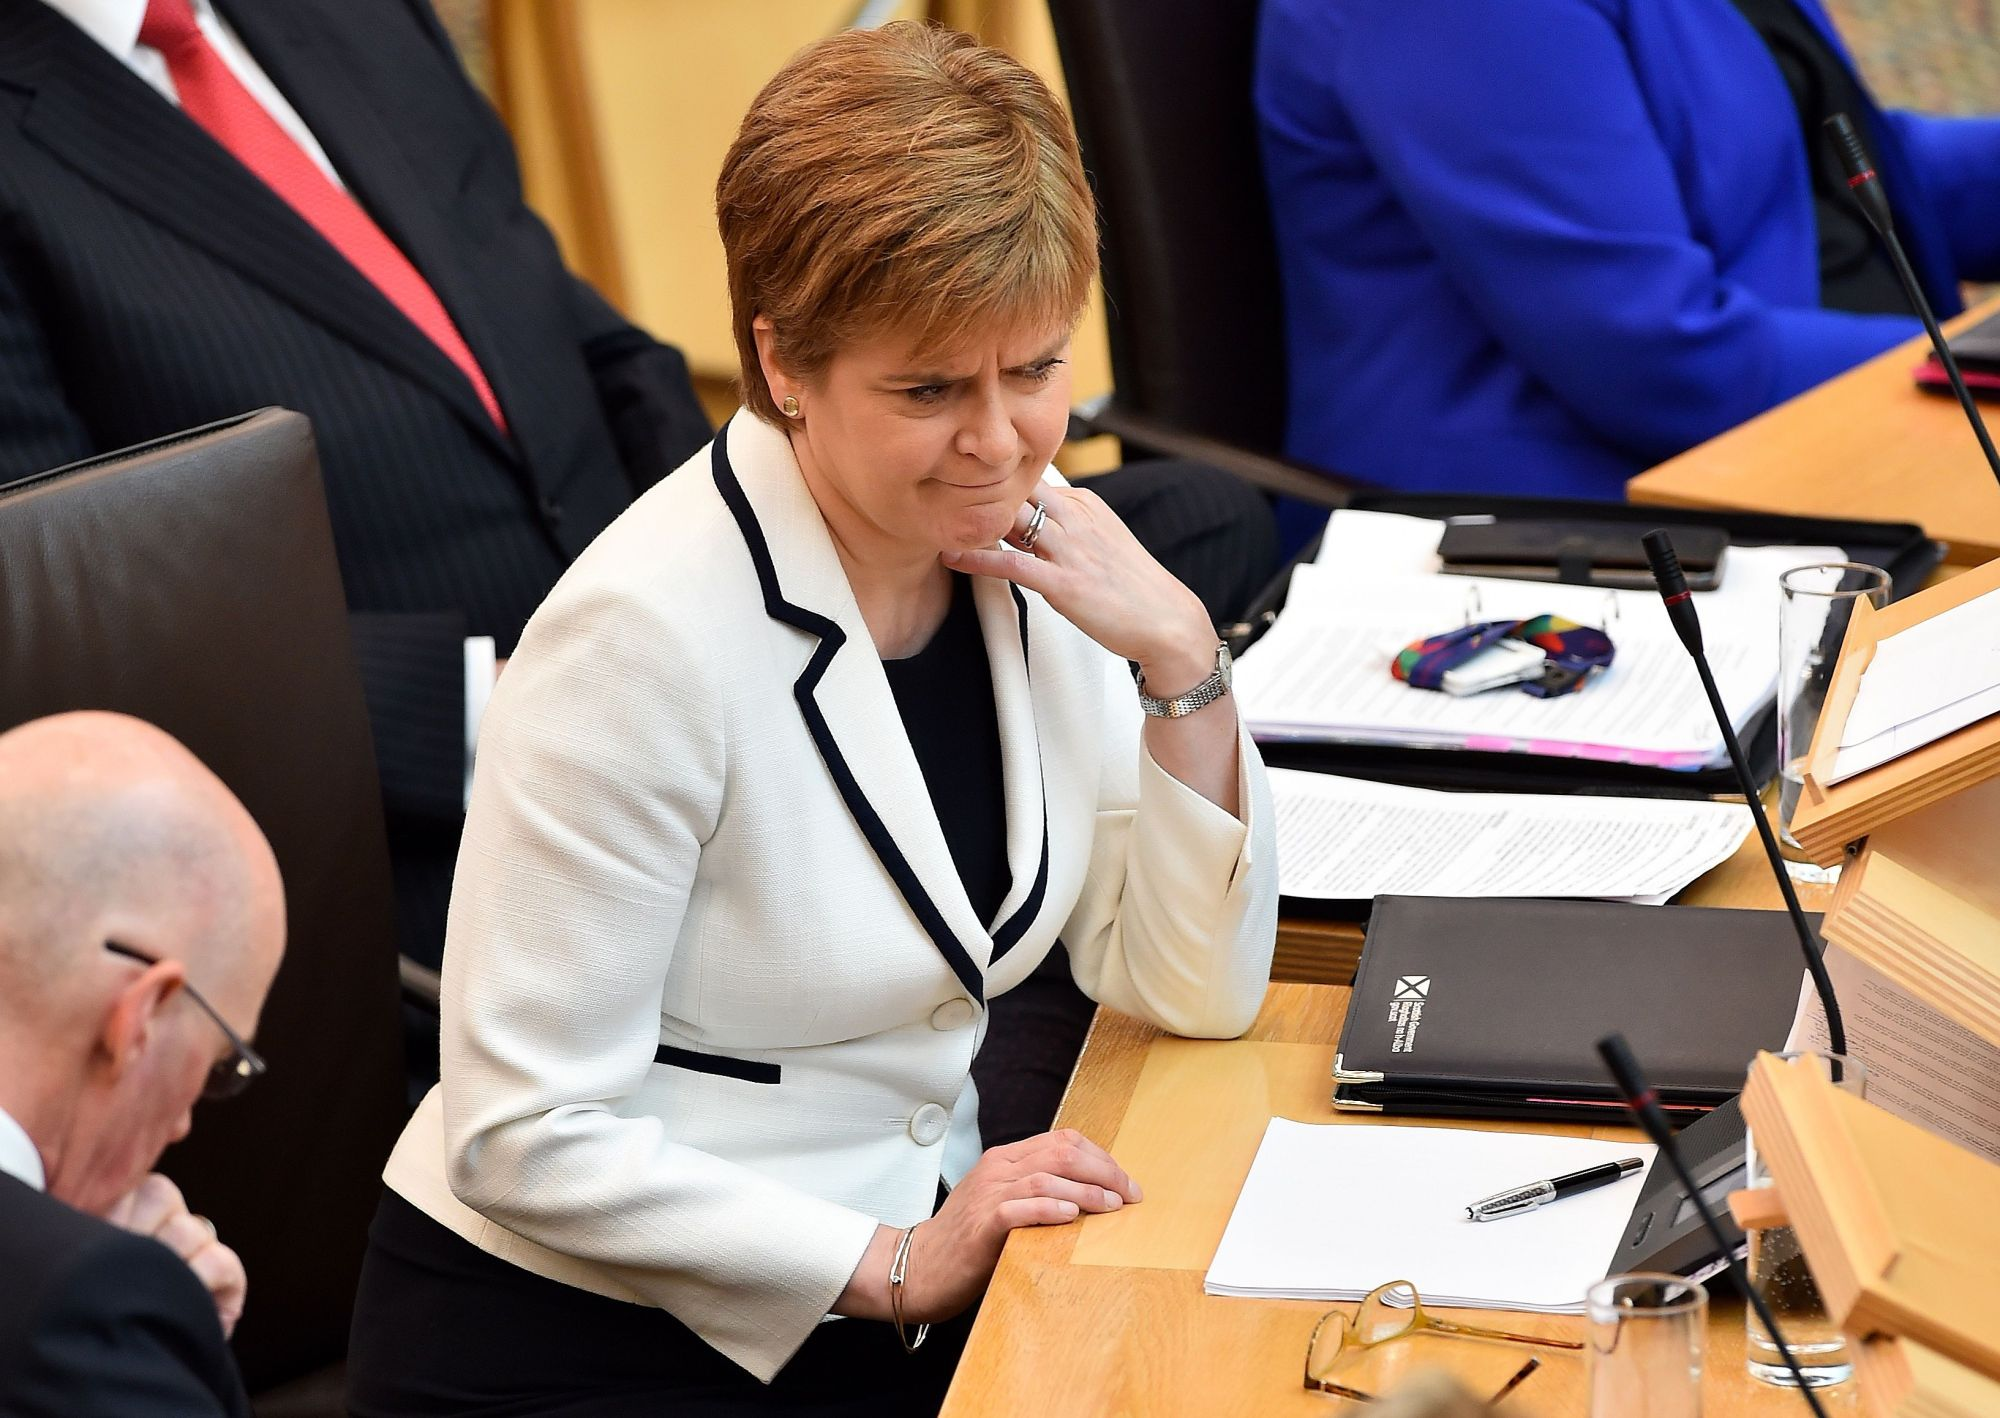 Scotland's First Minister Nicola Sturgeon makes a statement to the Scottish Parliament on Brexit and a second independence referendum, at Holyrood, central Edinburgh, Wednesday. | AFP-JIJI